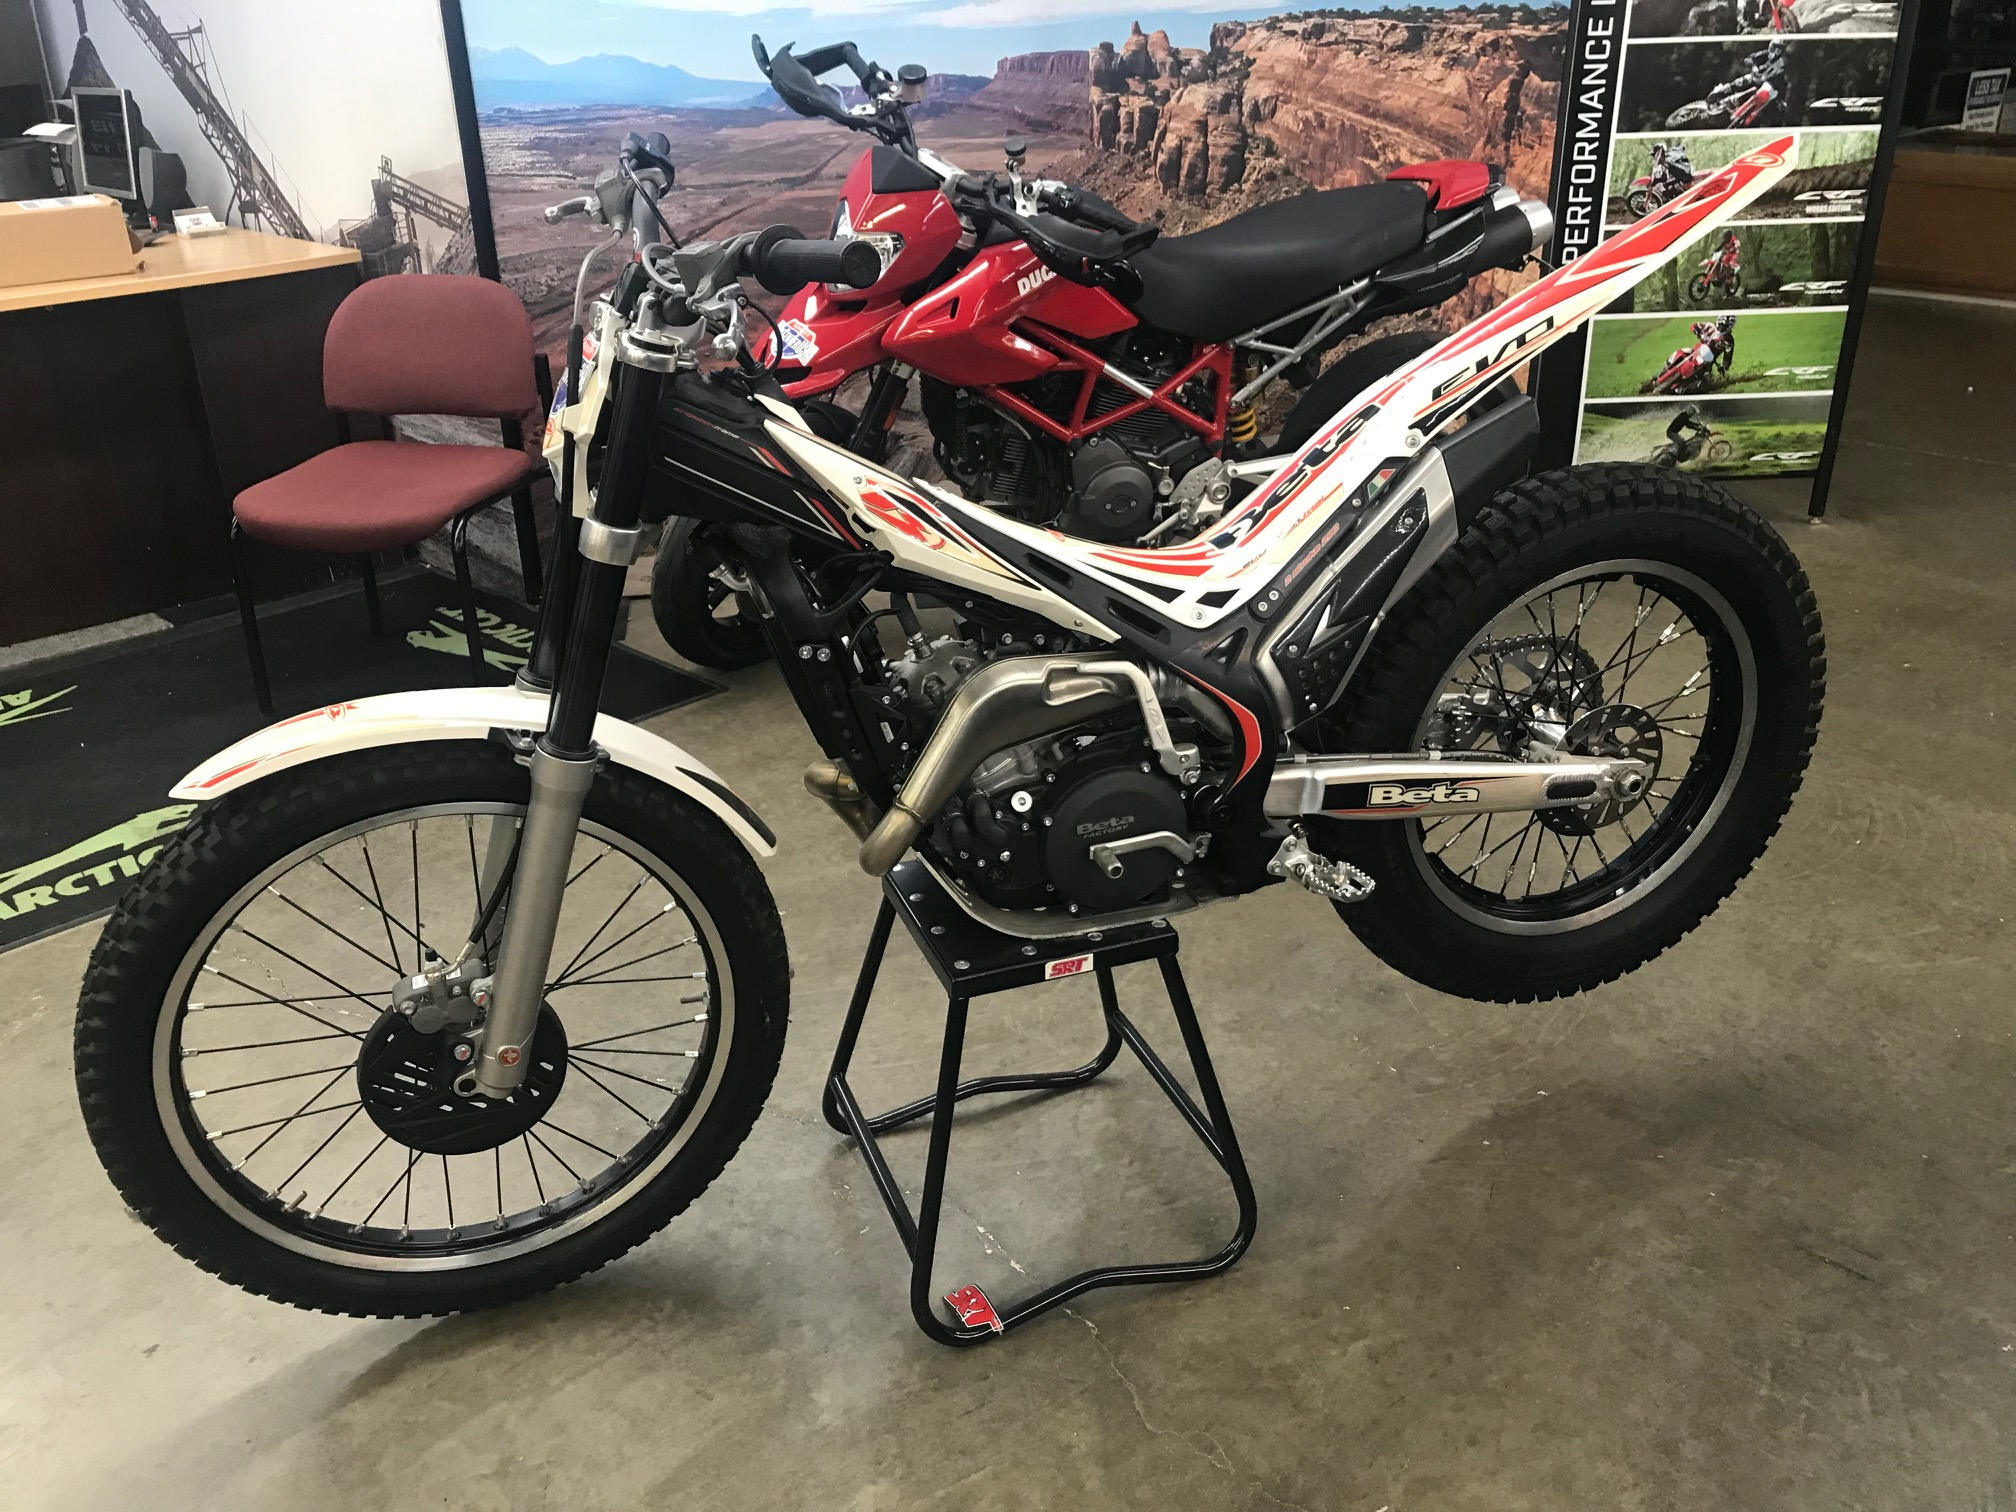 Pre-Owned Trials – Moto Trials